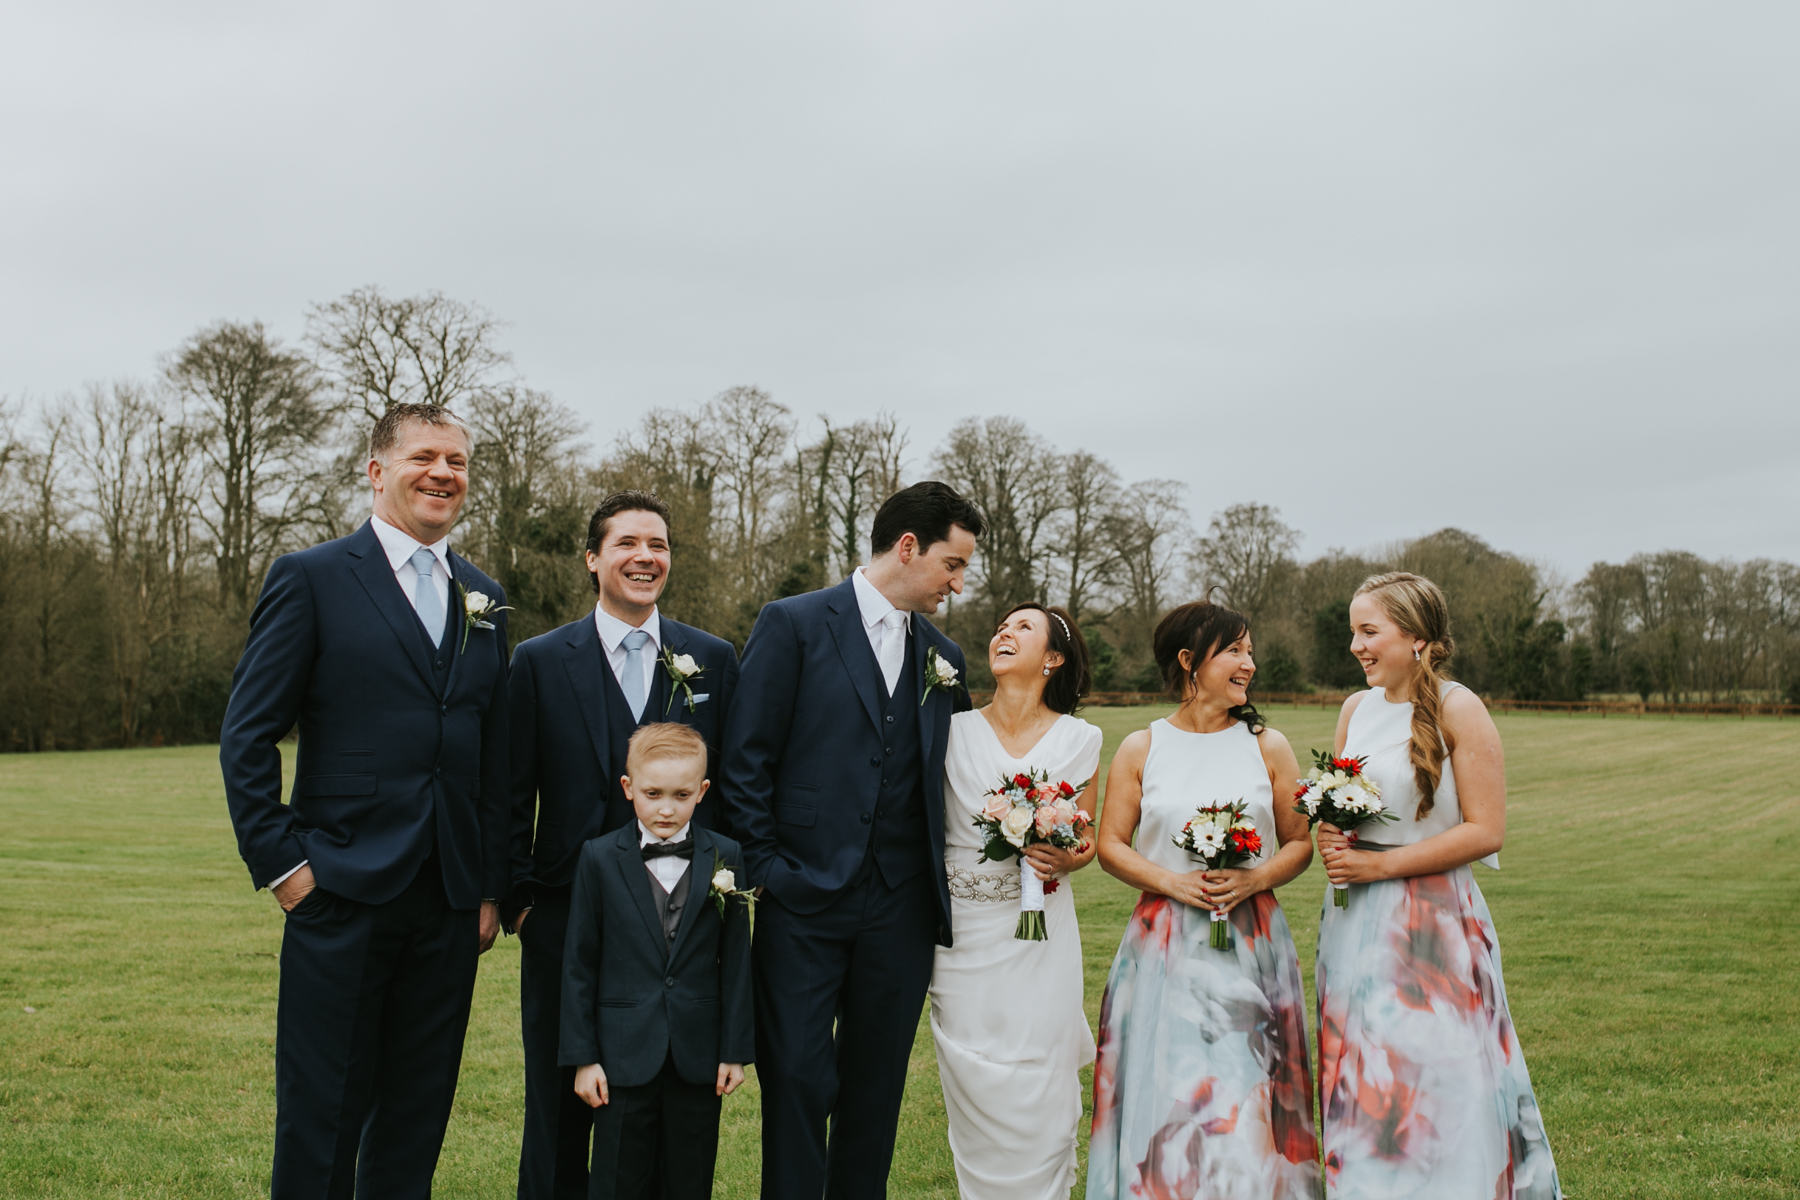 liviafigueiredo_weddingphotography_boyne_hill_house_estate_338.jpg